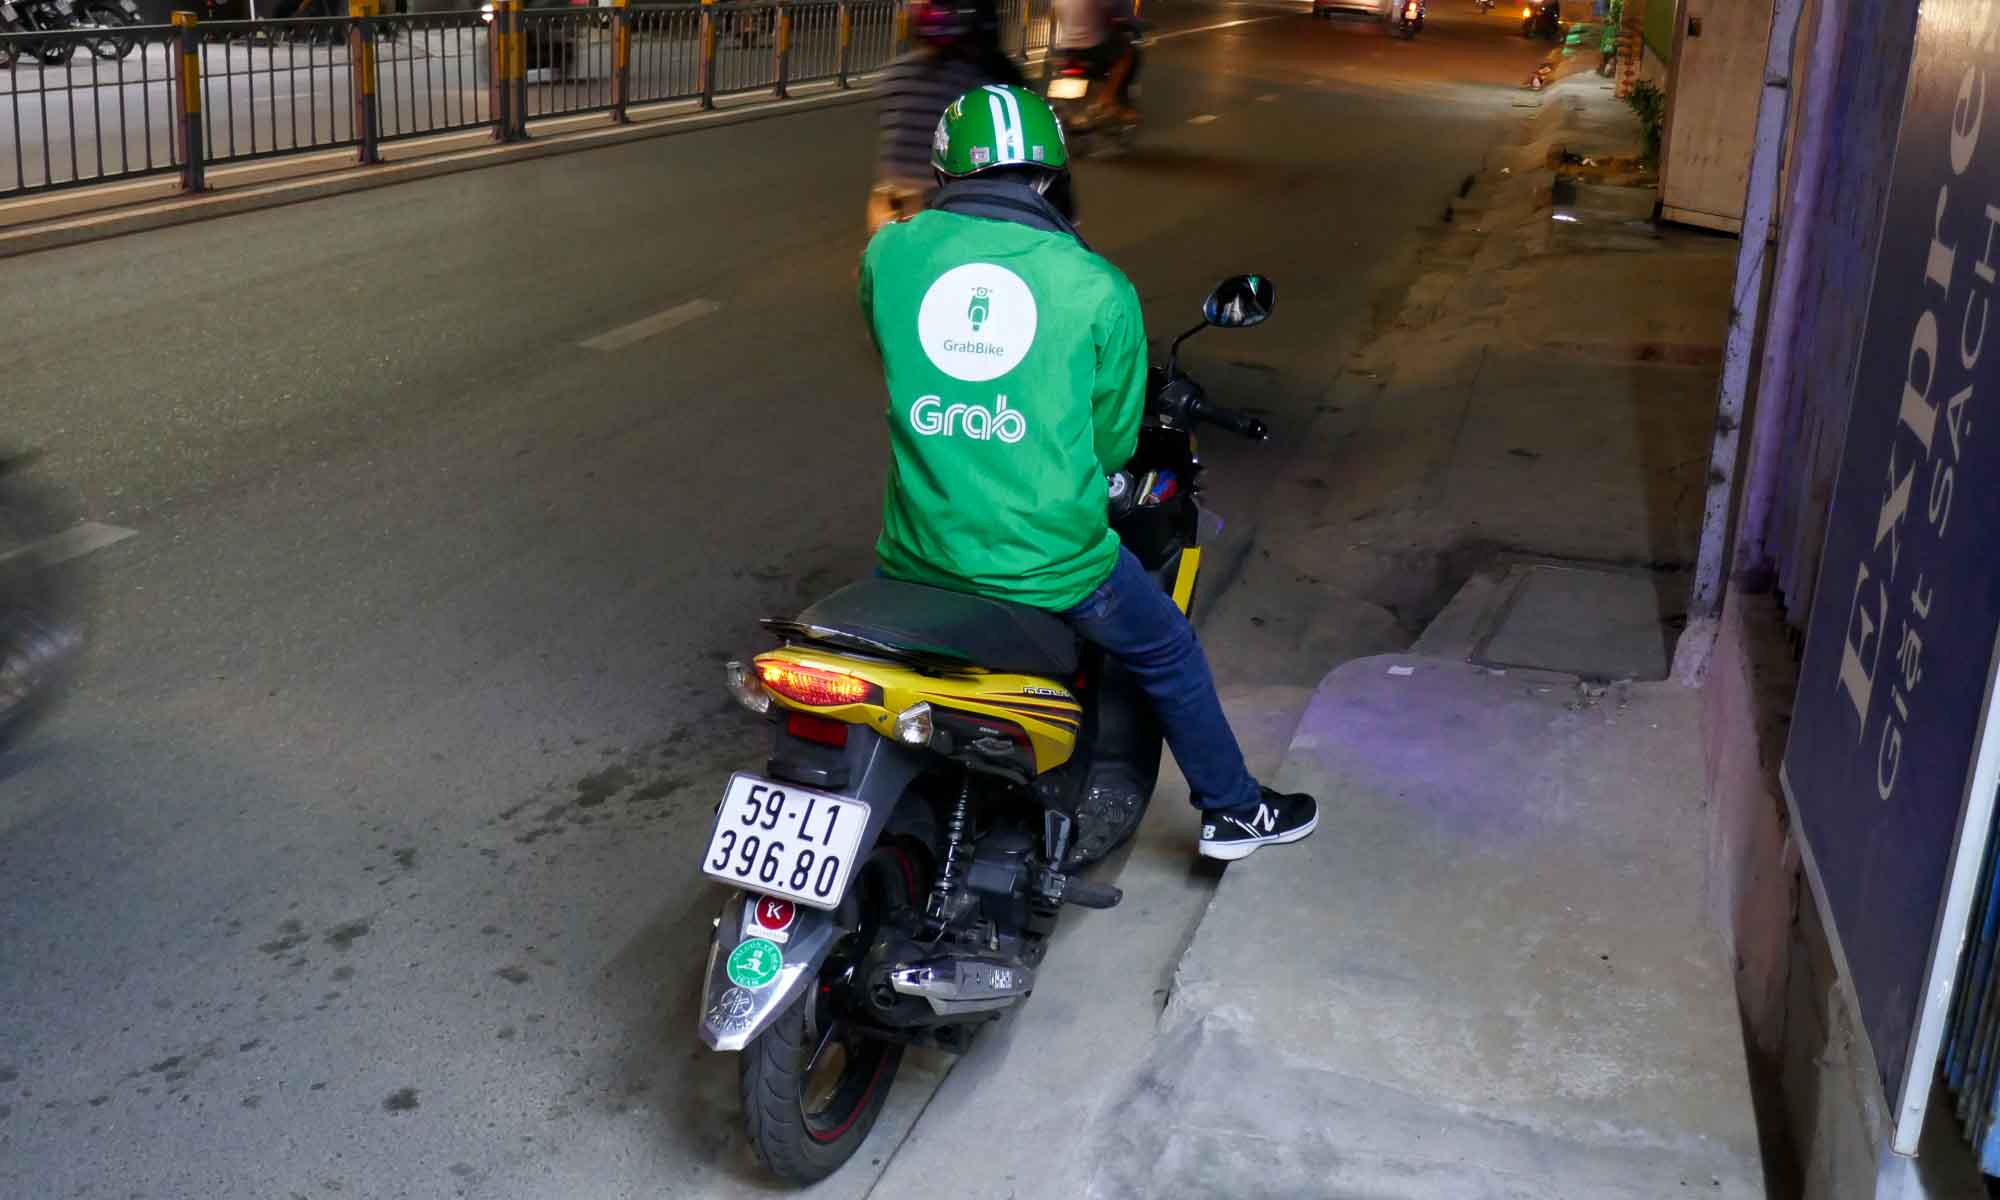 For a single person GrabBike is also an option